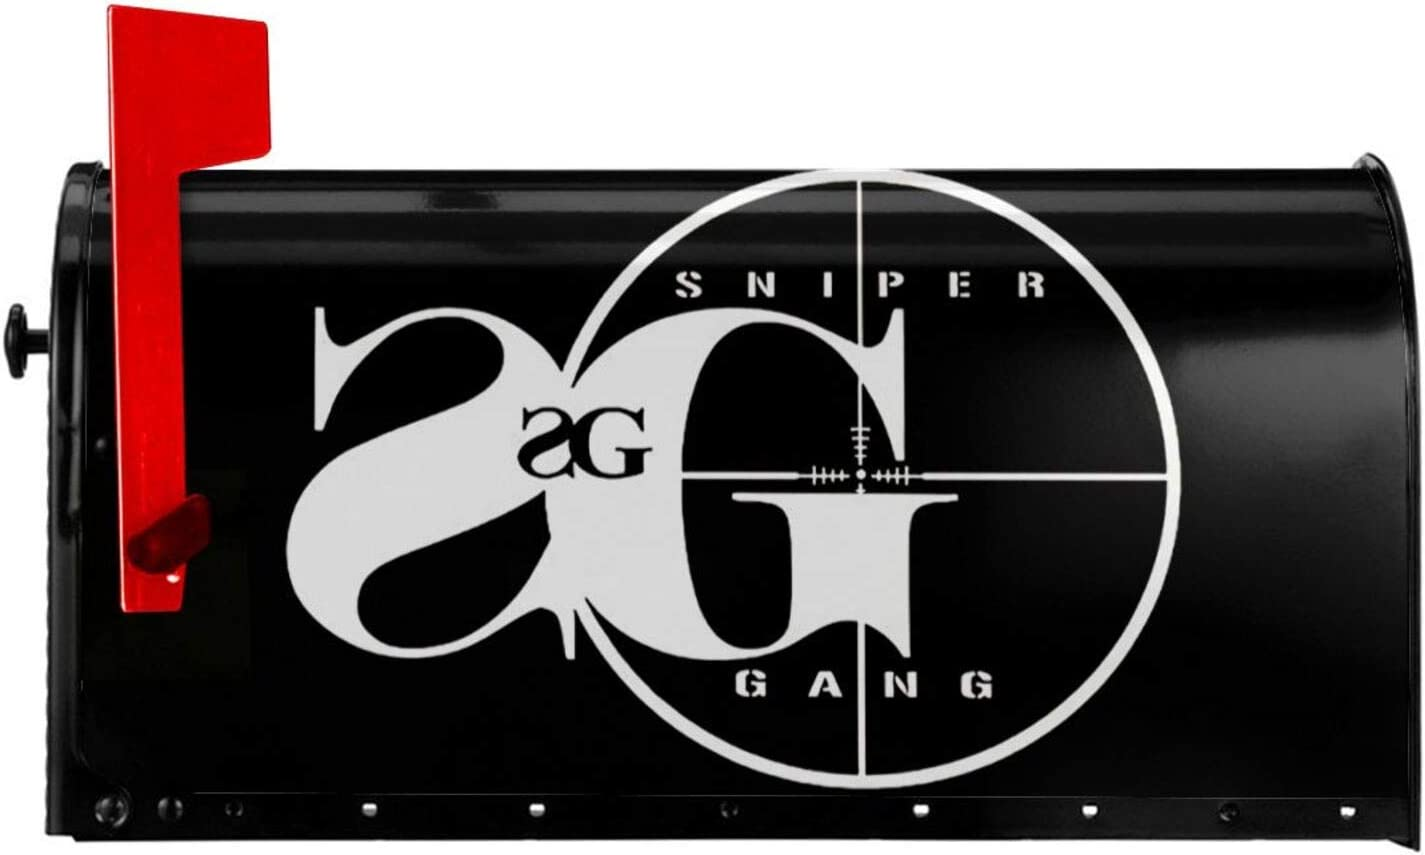 Just789 Sniper Gang Mailbox Cover Sticker Decoration Rainproof and Moistureproof Fashion